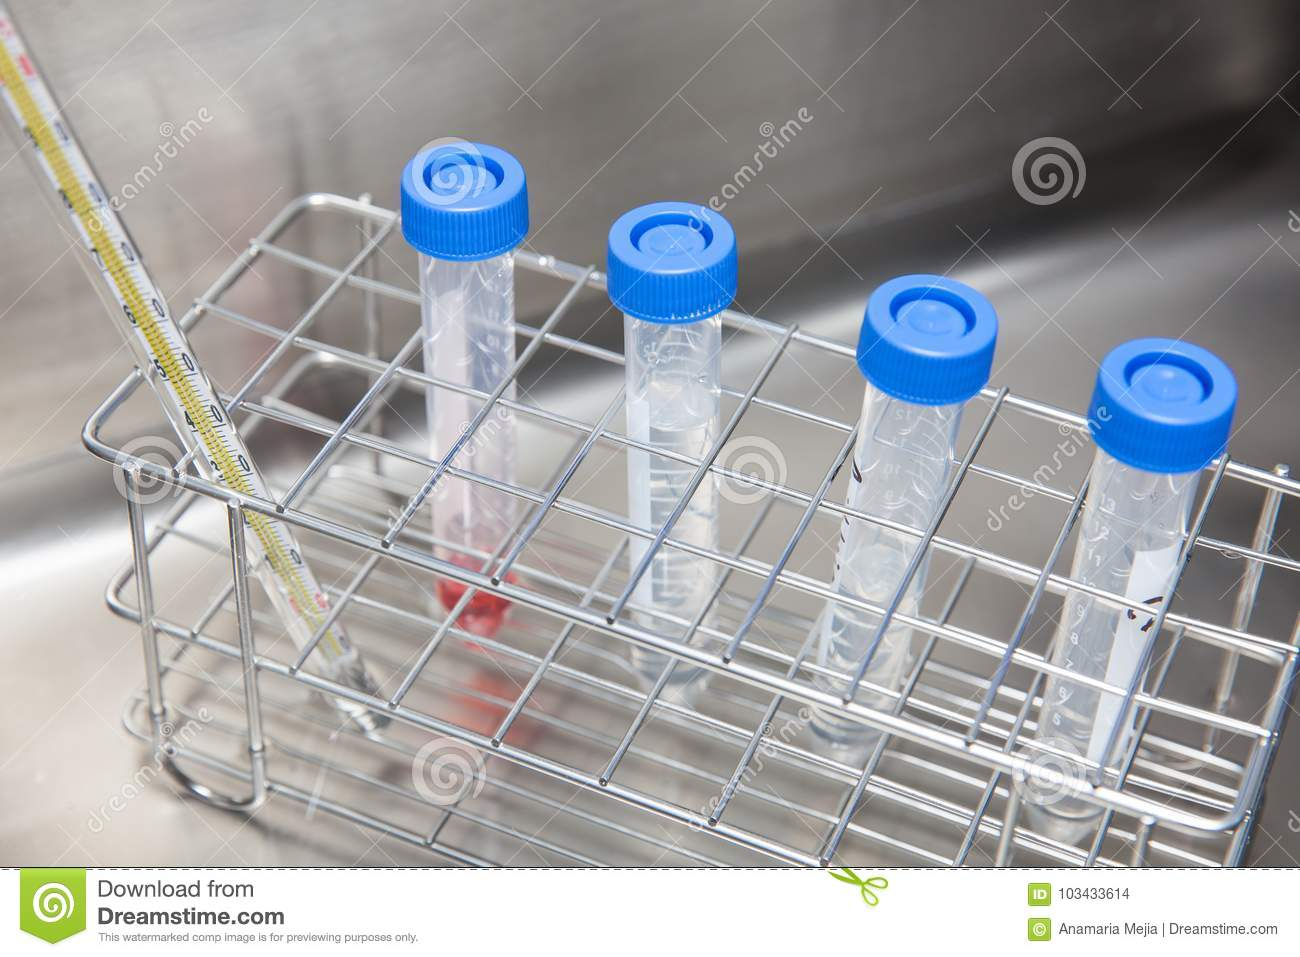 Falcon Tubes And Rack In A Hot Water Bath Stock Photo - Image of ...